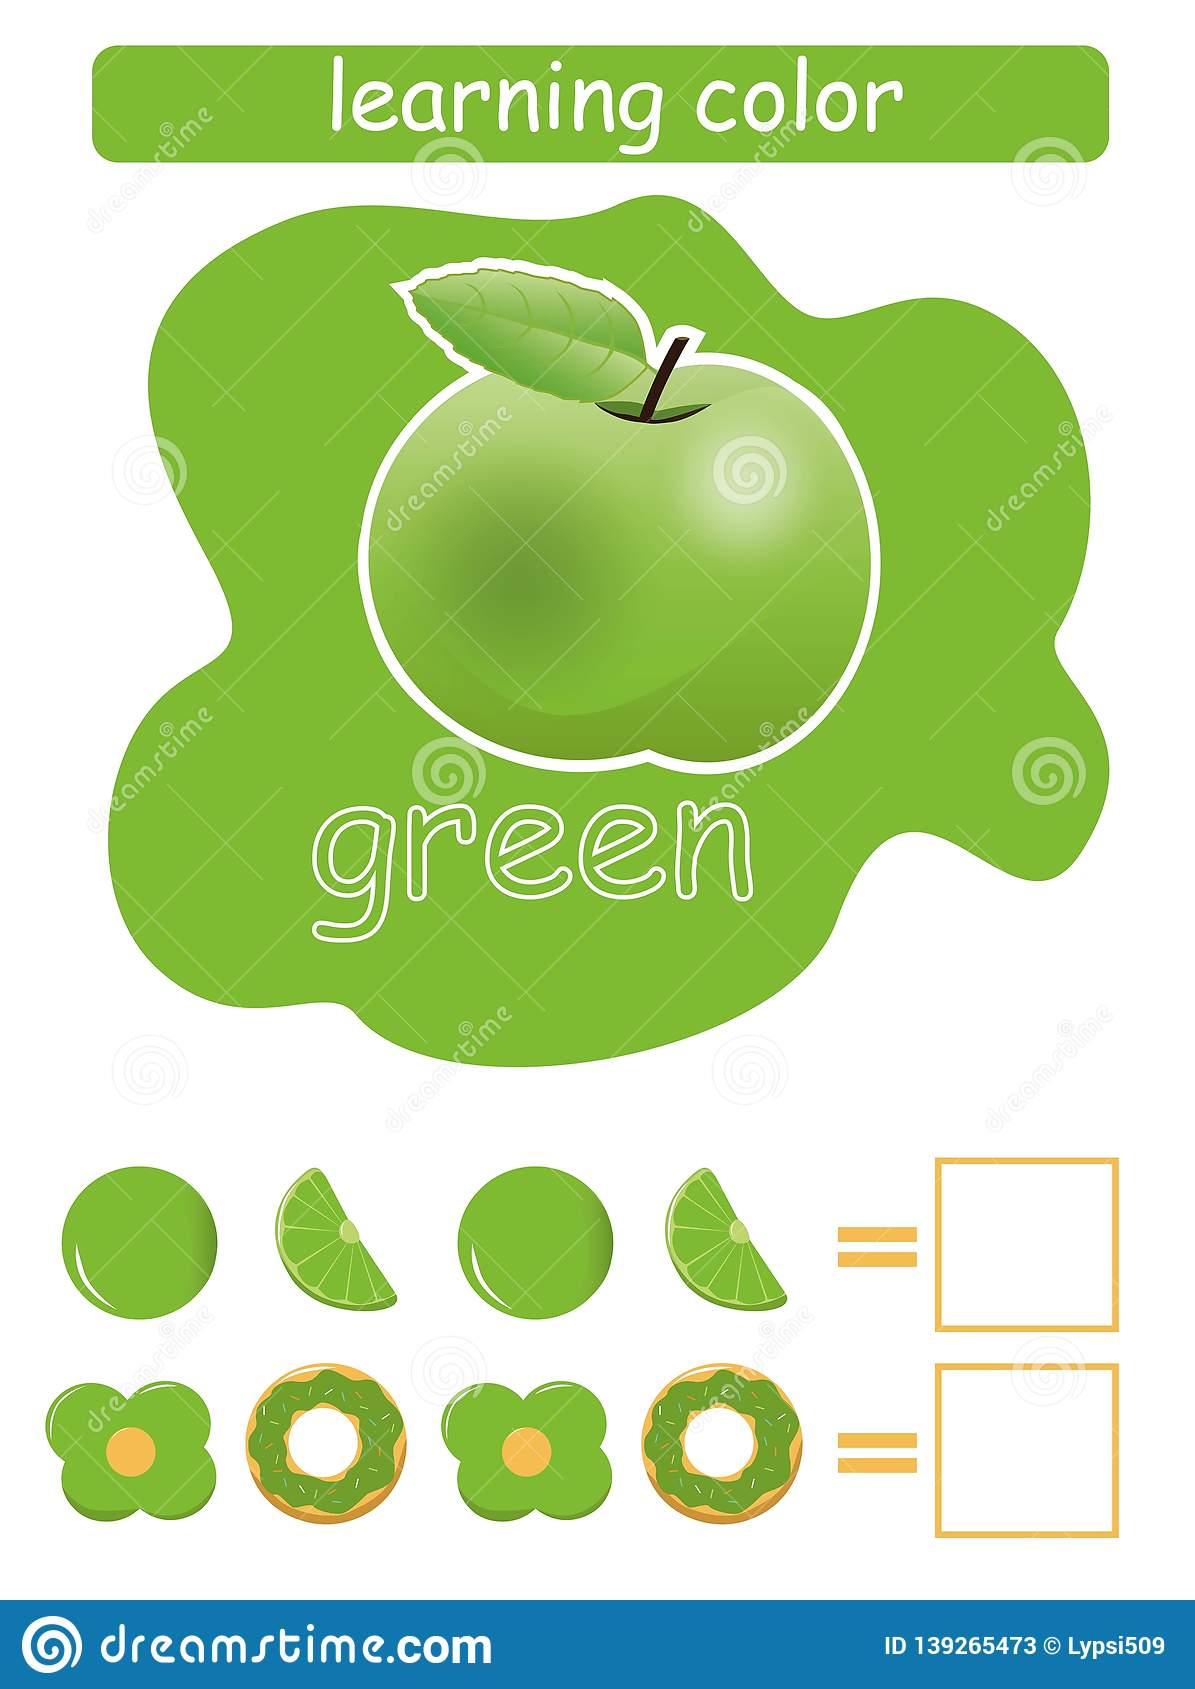 Learning Color Green Educational Game For Children